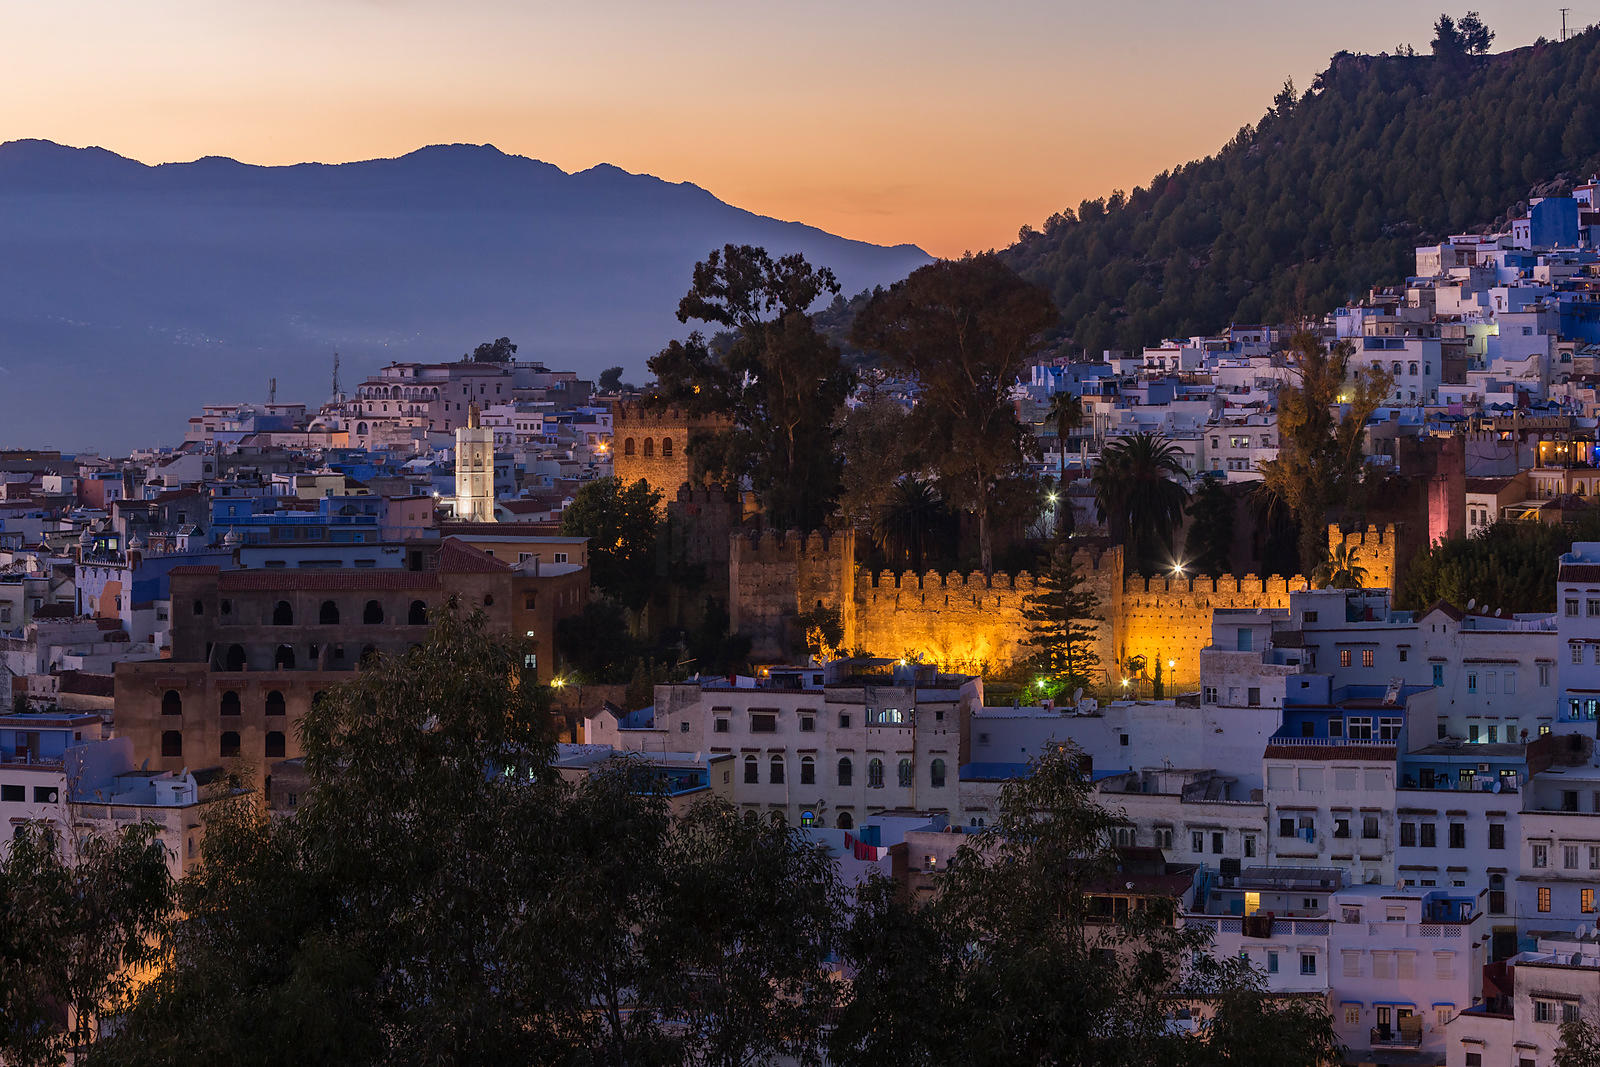 Elevated View Looking Towards the Ancient Casbah of Chefchaouen and the Square of Uta el Hammam at Dusk